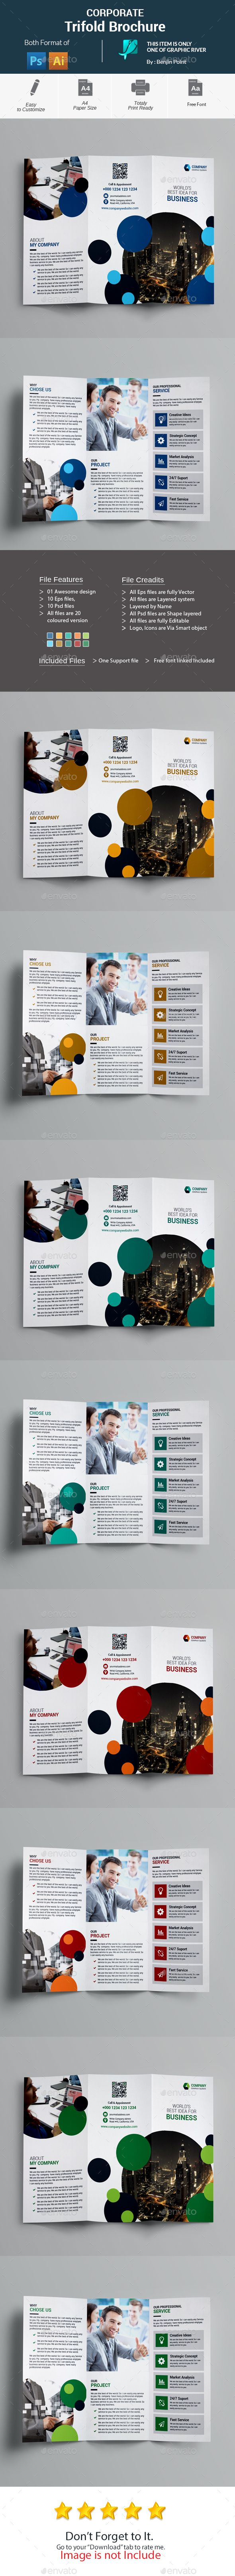 Corporate Trifold Brochure Template PSD, Vector EPS, AI Illustrator ...